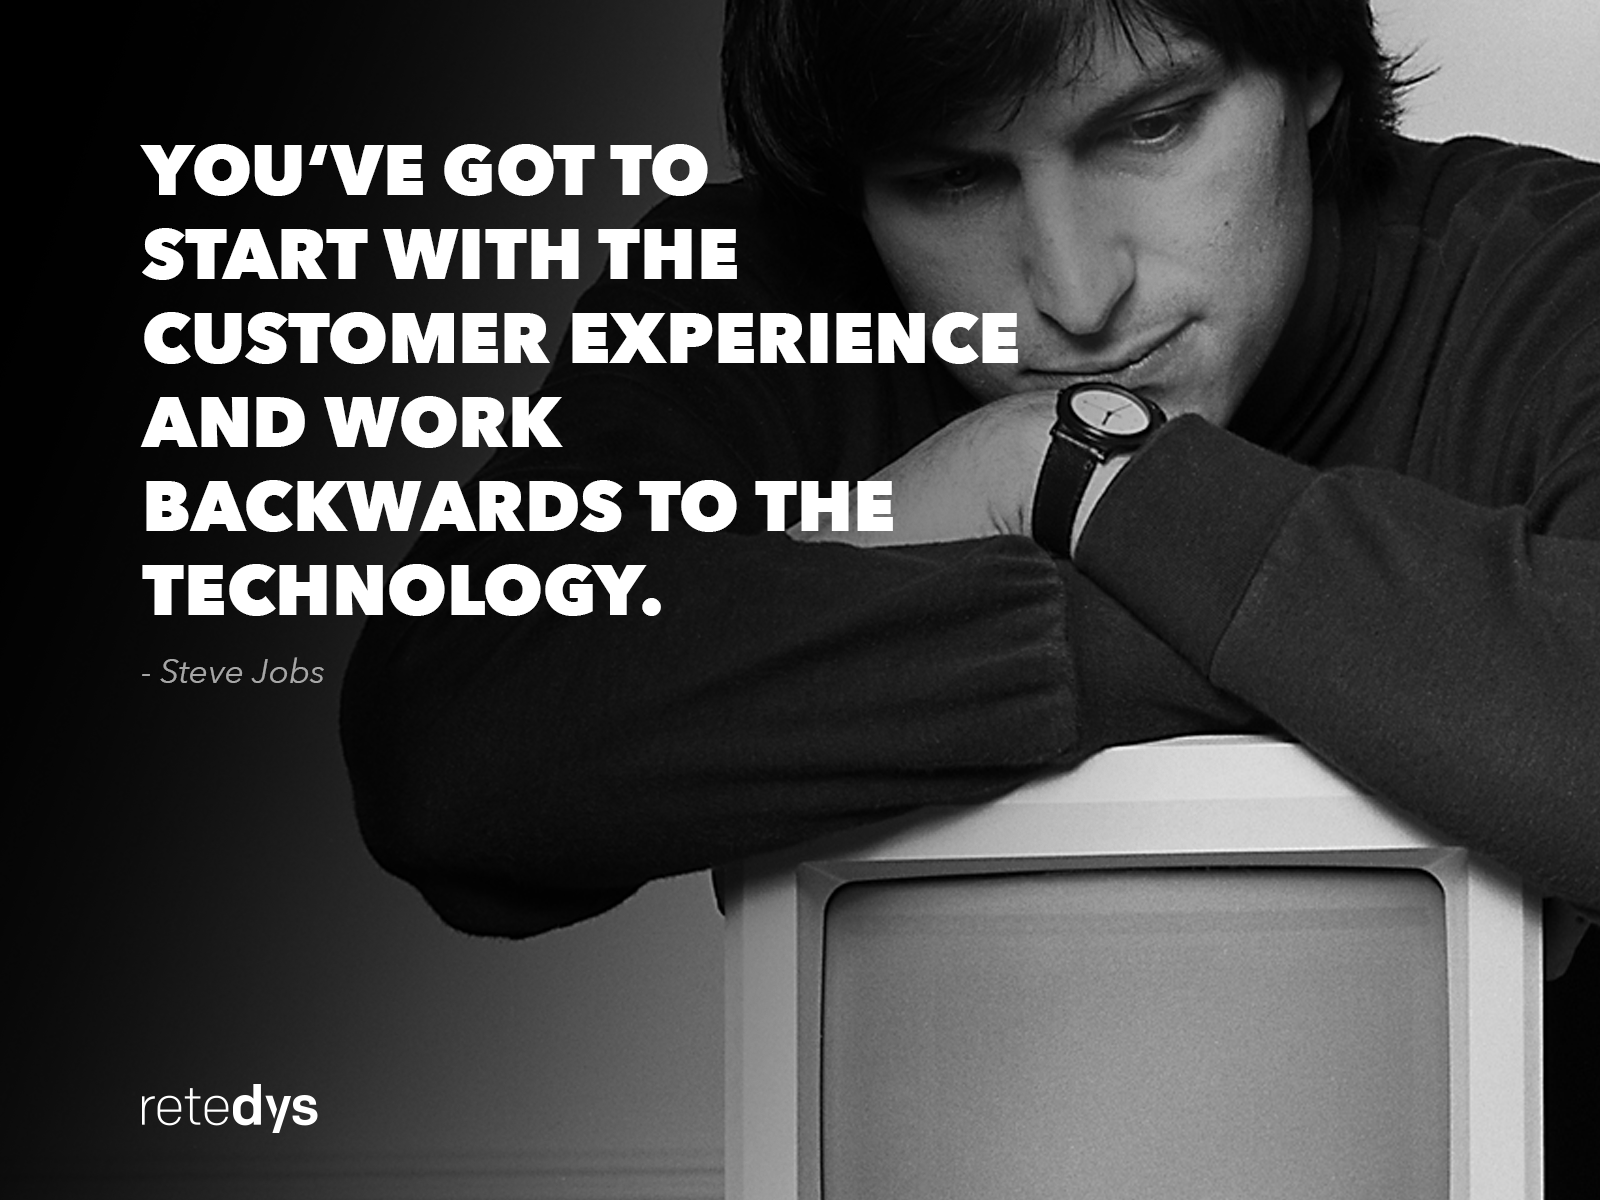 Technology Quote by Steve Jobs - Retedys